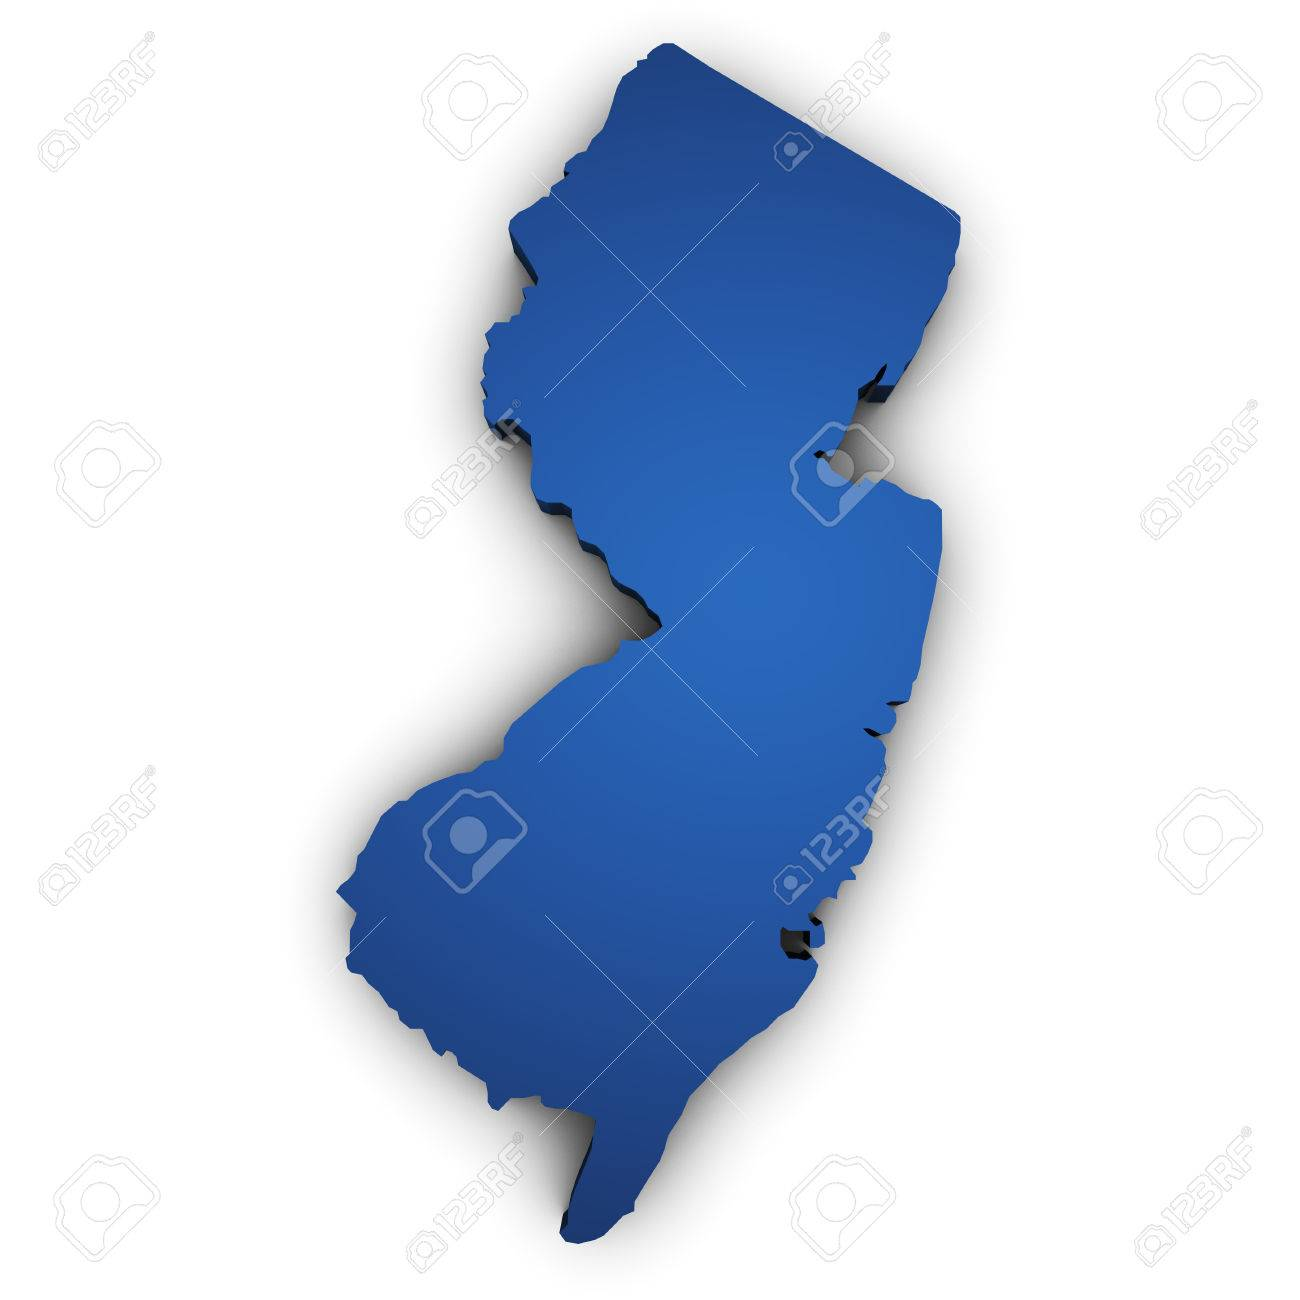 Shape D Of New Jersey State Map Colored In Blue And Isolated - New jersey state map